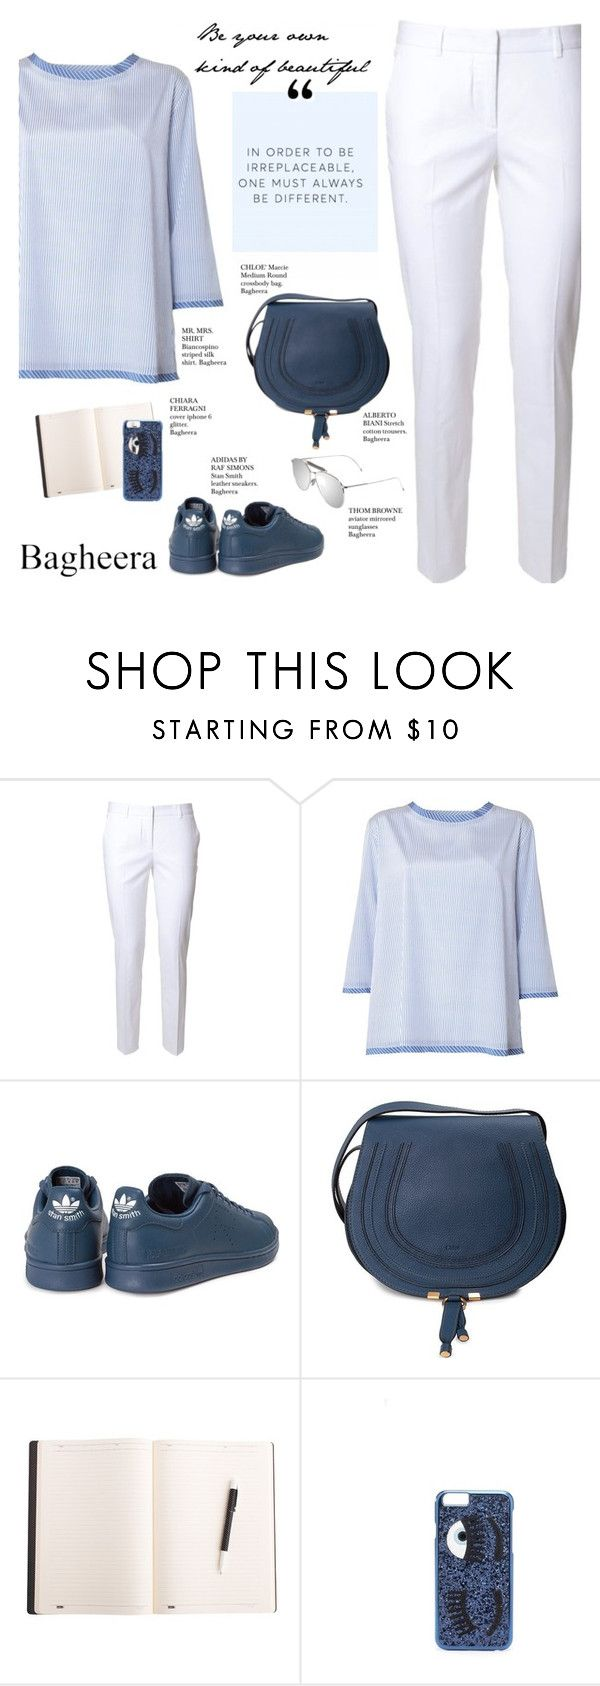 """#896 Bagheera"" by giulls1 ❤ liked on Polyvore featuring Alberto Biani, MR. MRS. SHIRT, adidas, Chloé, Chiara Ferragni, Thom Browne and bagheeraboutique"